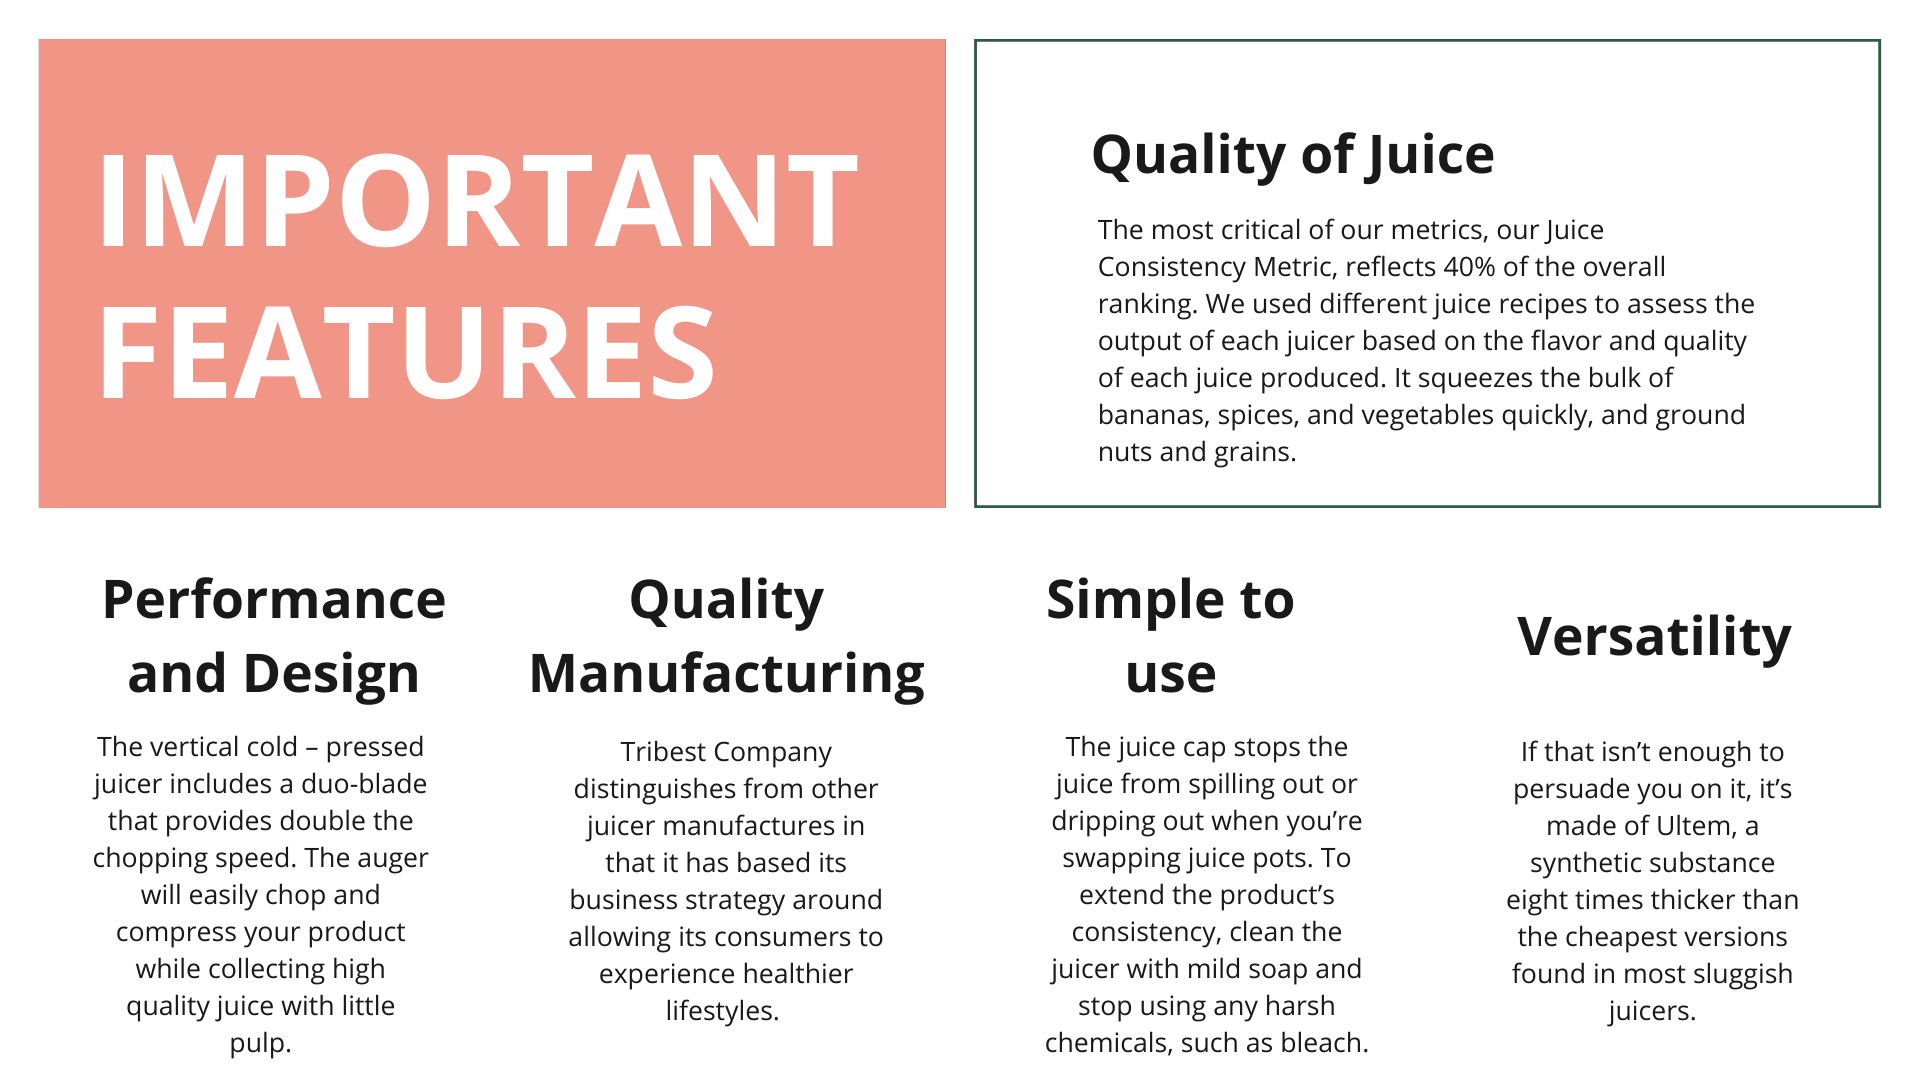 Important Features